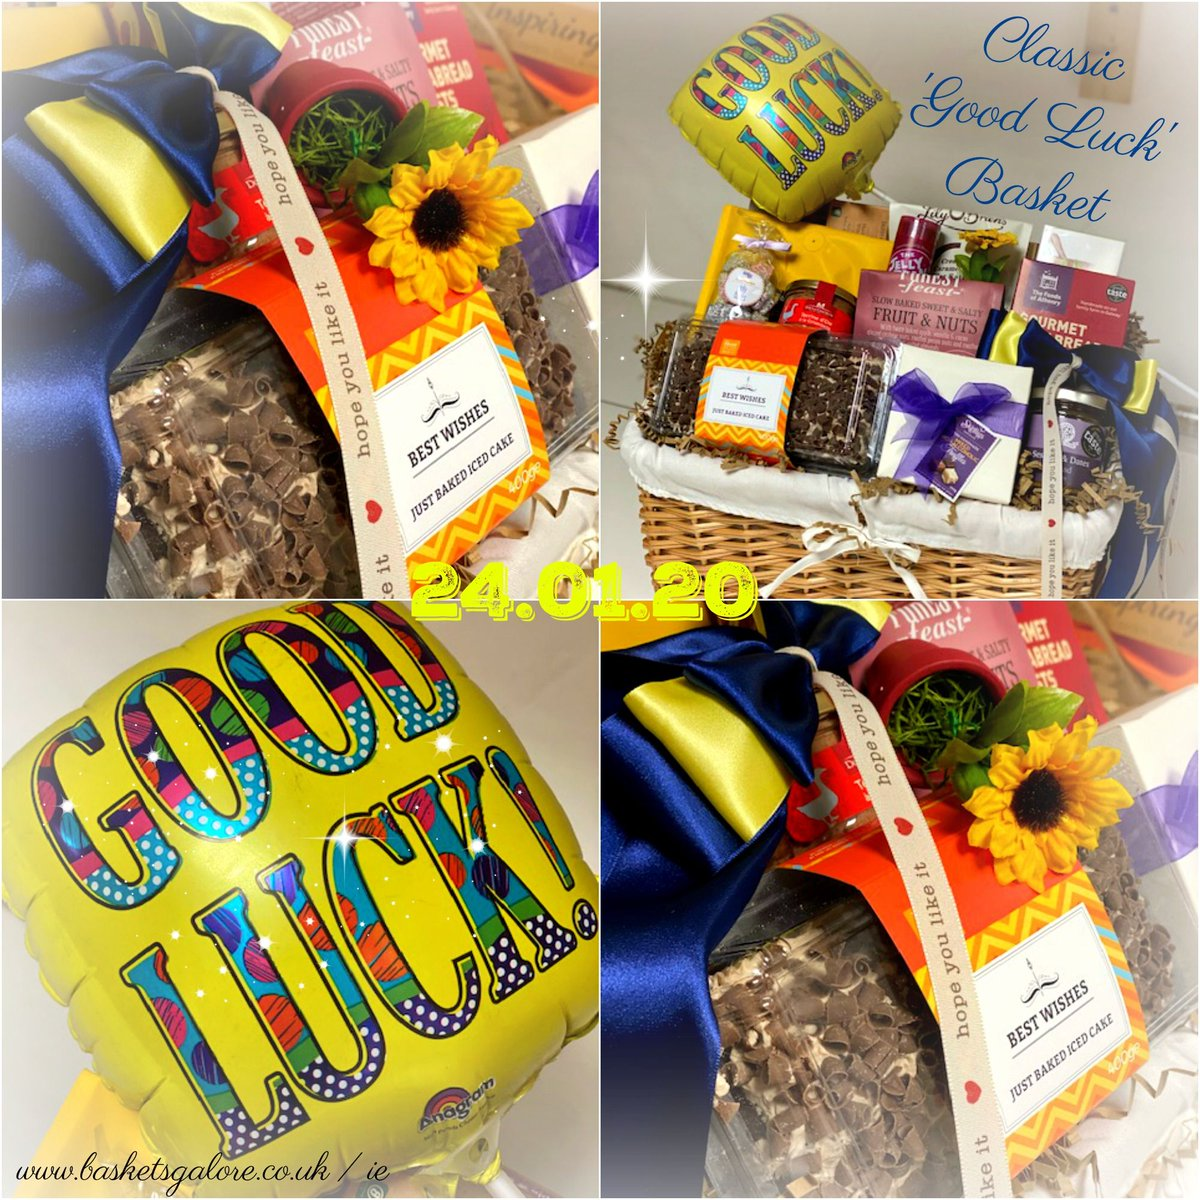 Today's Gift Basket Of The Day is .... Classic Good Luck >>  RT, Like & Follow to enter #prize draw to #win a Gift Basket. More info via our blog. #dailydispatch #gifts #competition #goodluck #classic #sweet #savoury